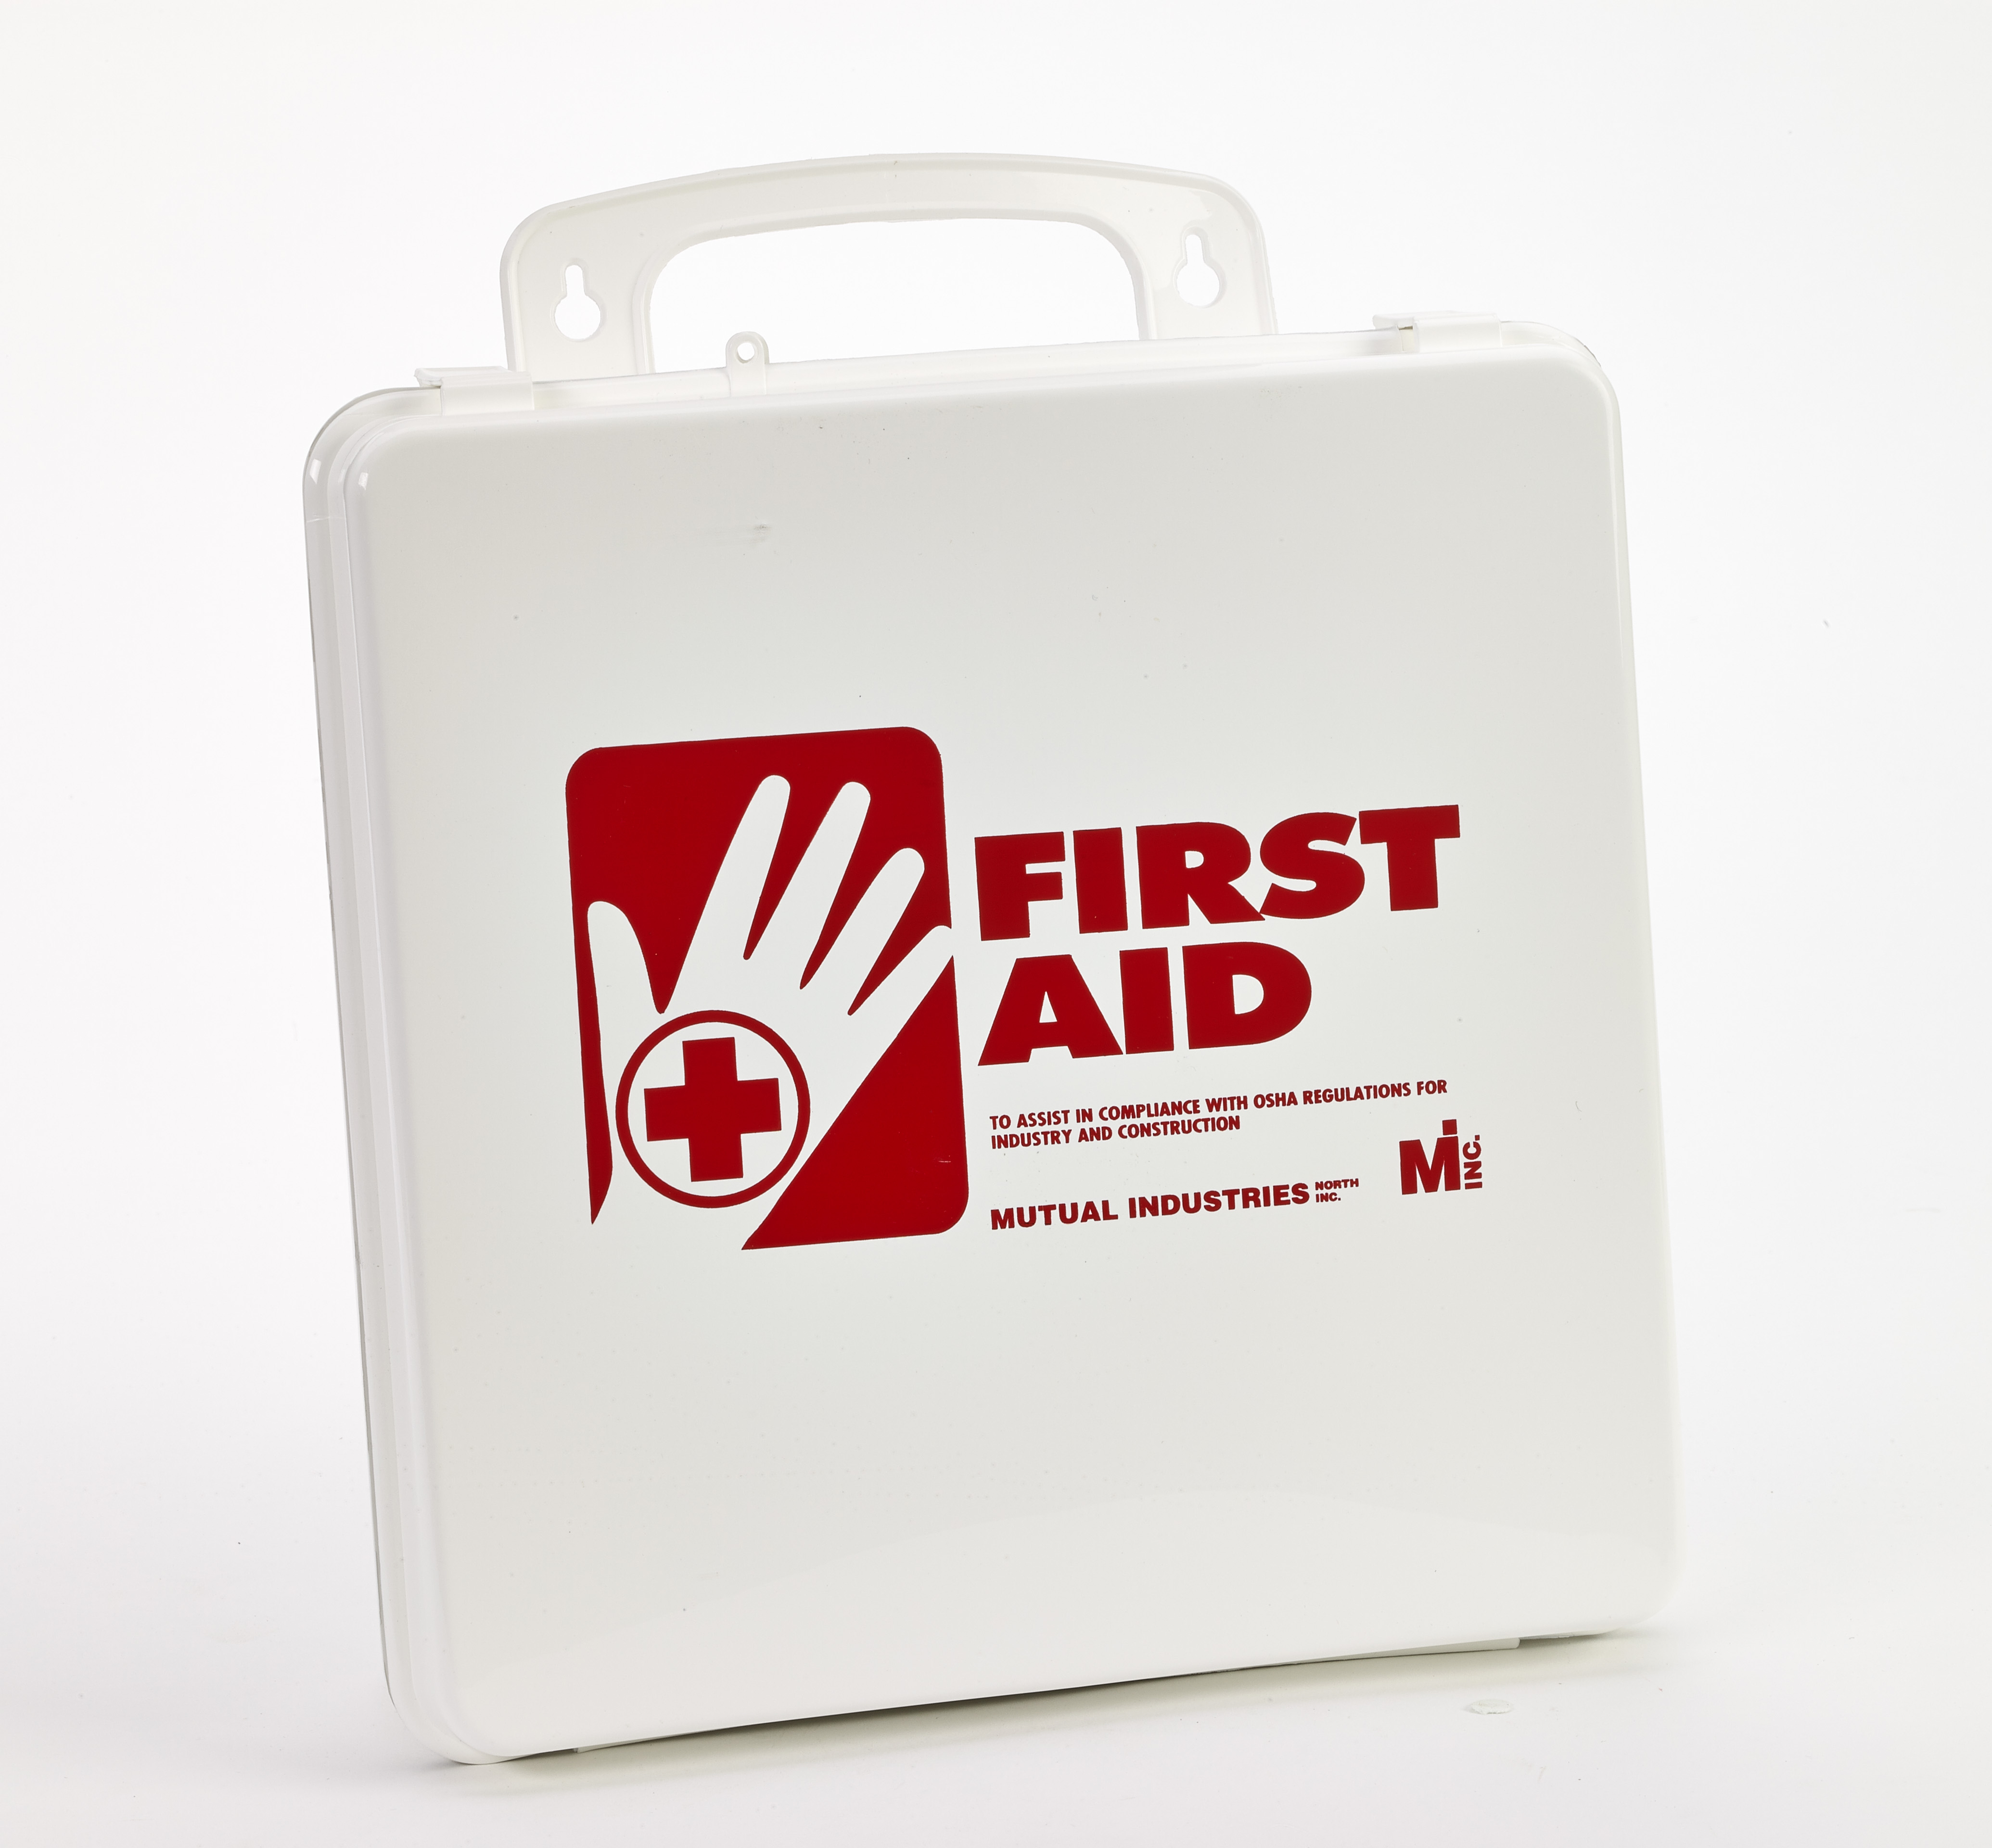 50 Person Weatherproof First Aid Kit